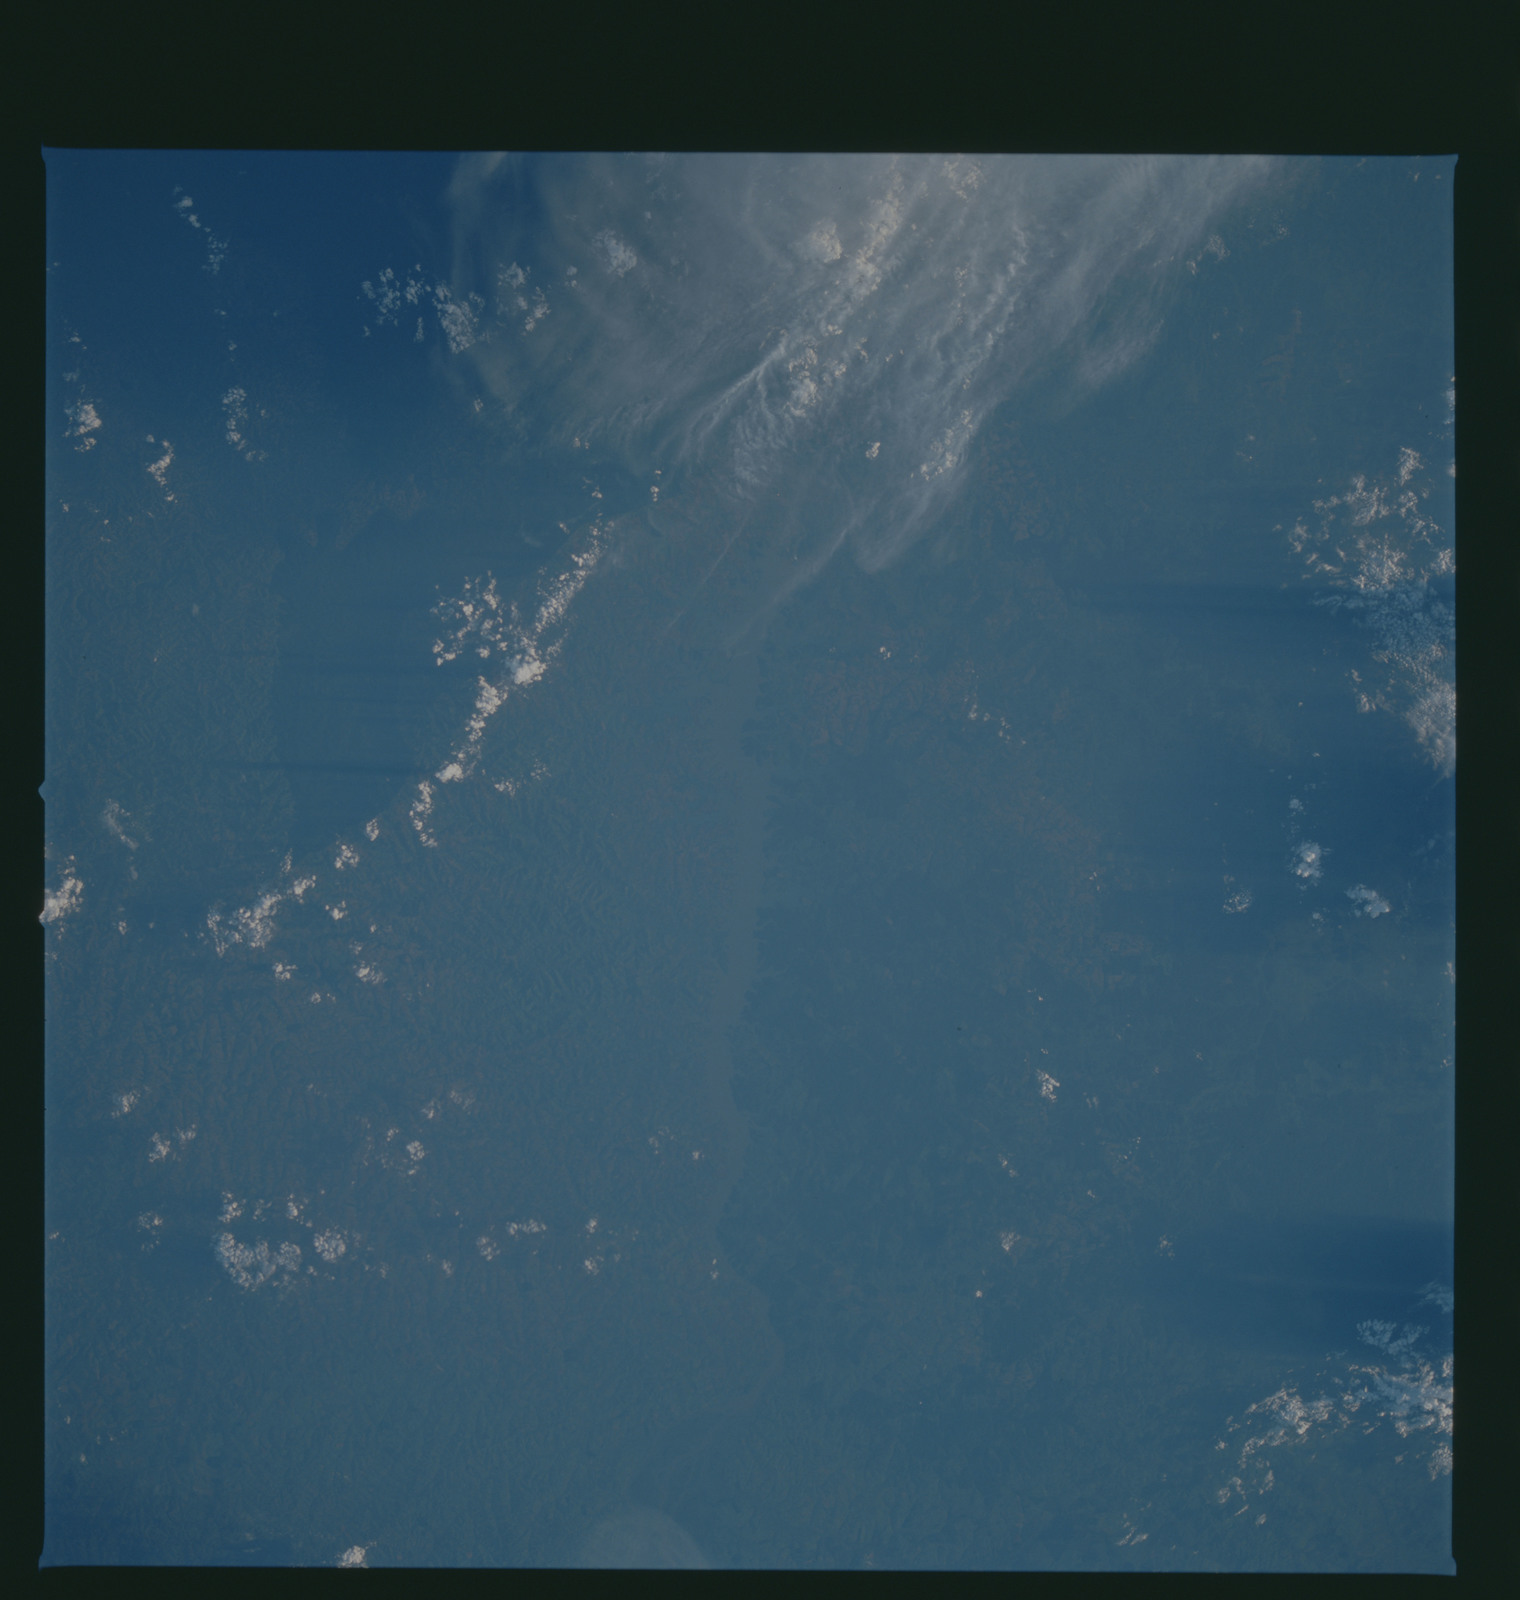 S37-96-068 - STS-037 - Earth observations taken from OV-104 during STS-37 mission